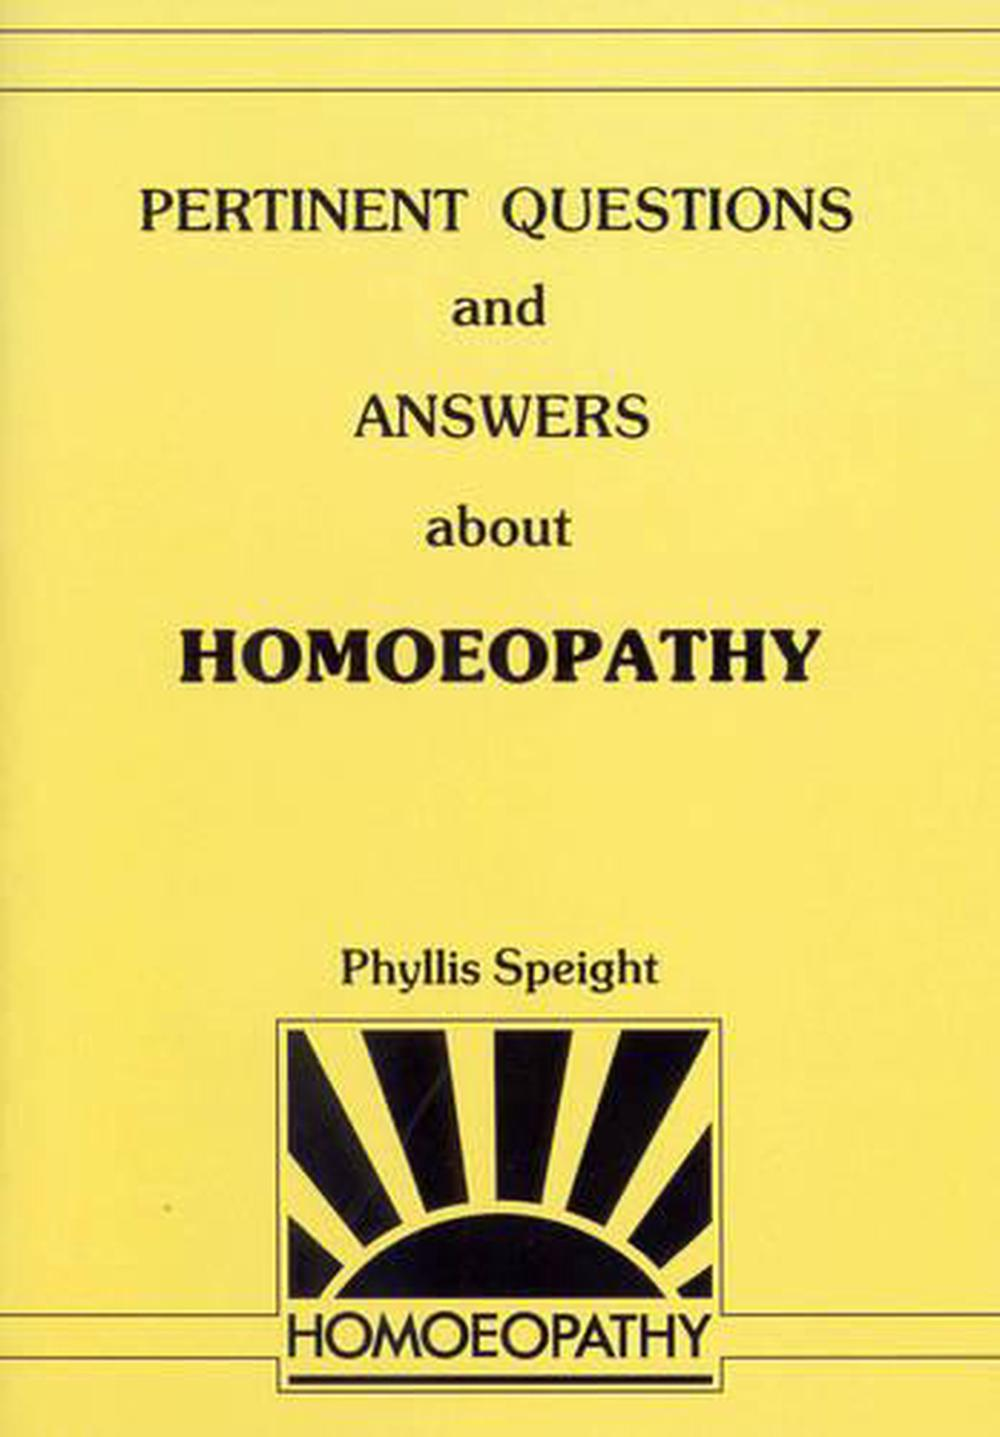 homoeopathic remedies for children speight phyllis